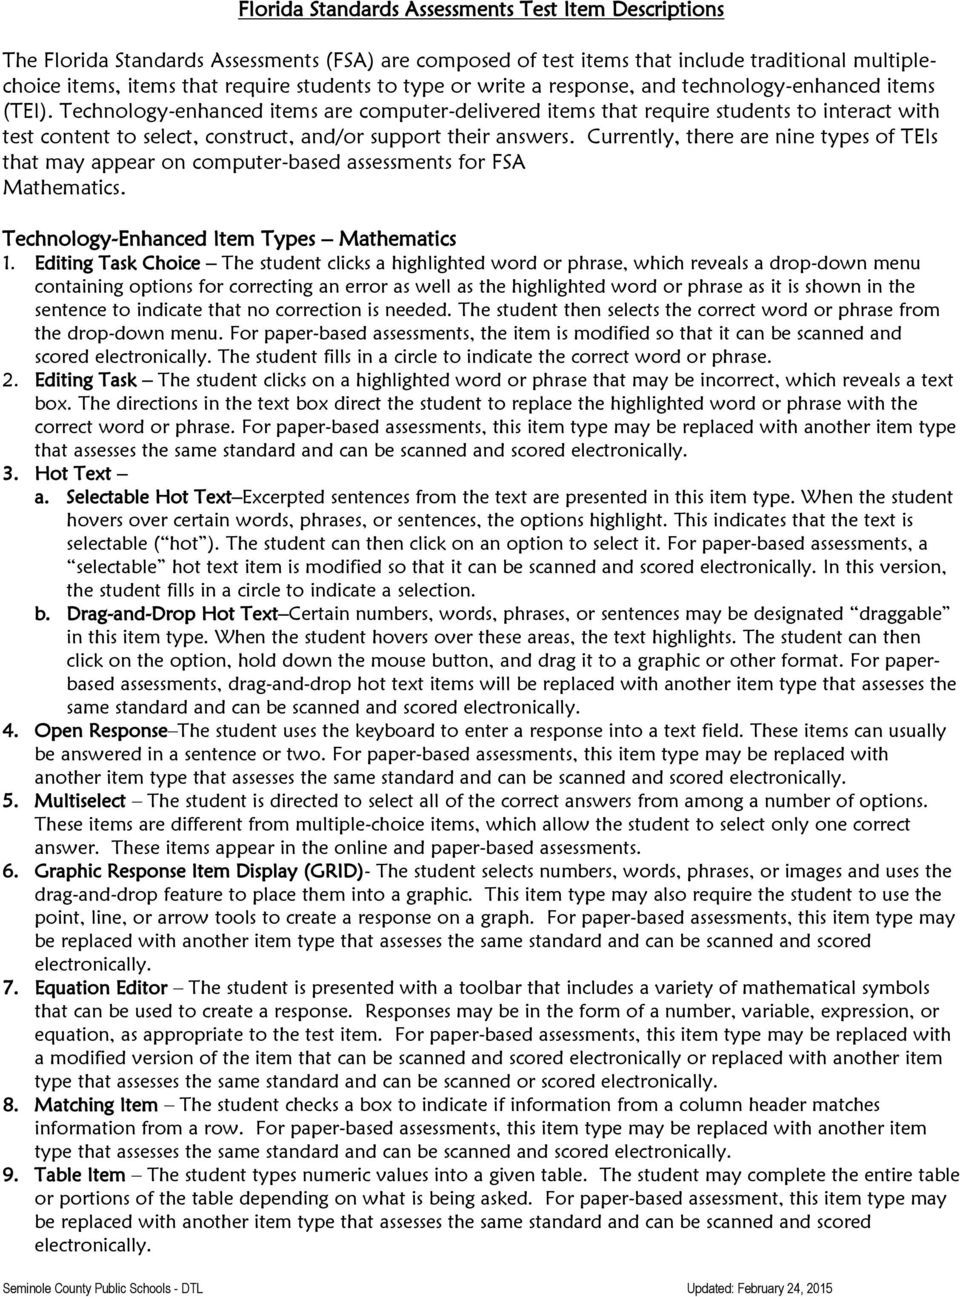 7 th grade fsa countdown pdf technology enhanced items are computer delivered items that require students to interact with test fandeluxe Gallery